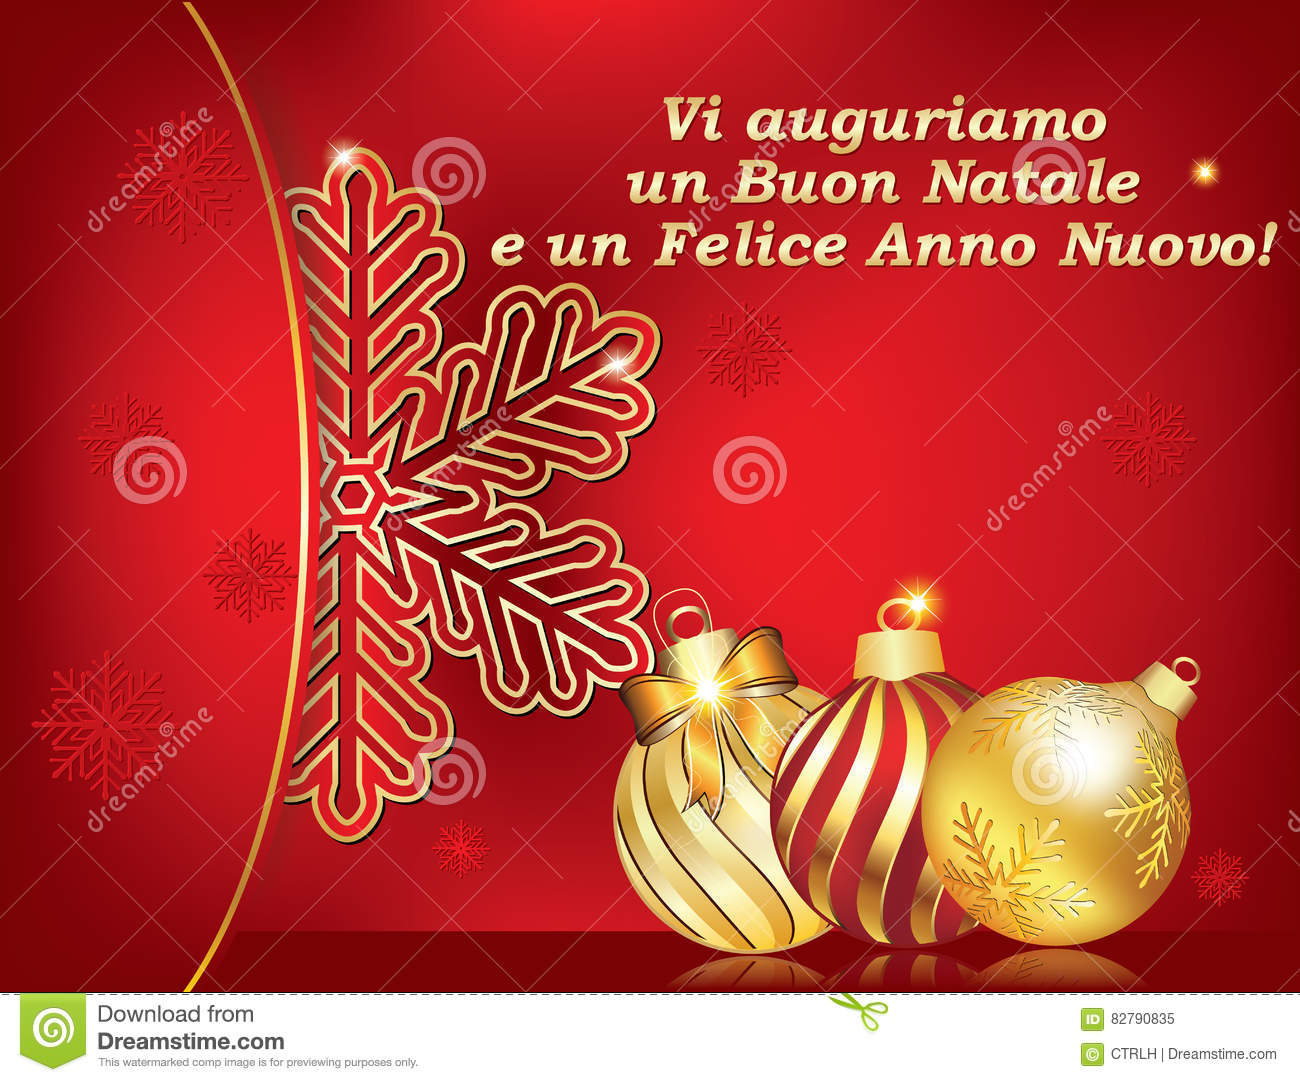 italian greeting card for winter holiday text translation we wish you merry christmas and happy new year print colors used size of a custom postcard - Merry Christmas In Italian Translation